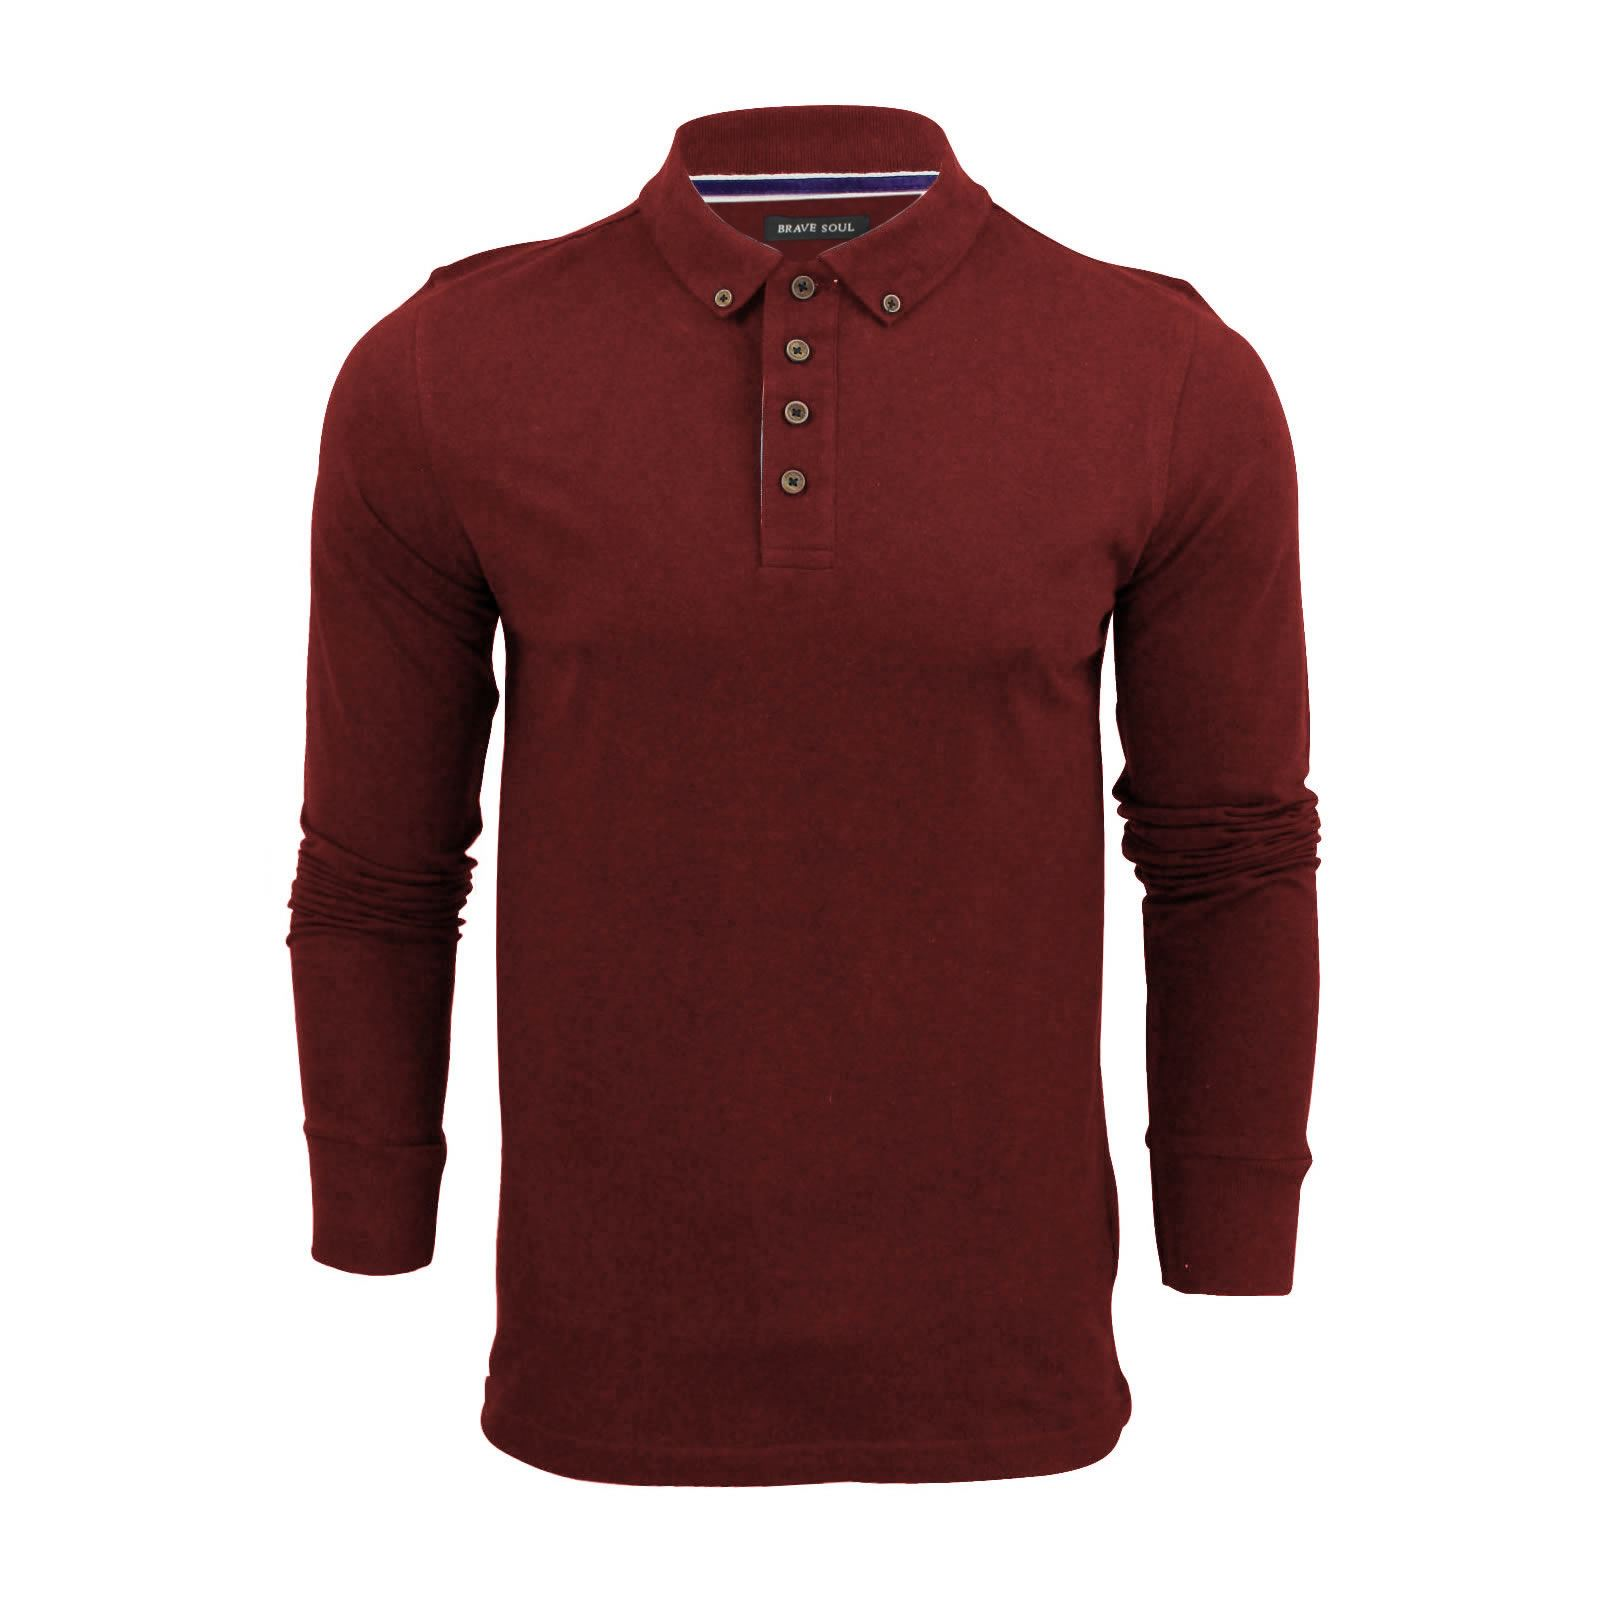 Brave-Soul-Lincoln-Mens-Polo-T-Shirt-Long-Sleeve-Cotton-Pique-Casual-Top thumbnail 24